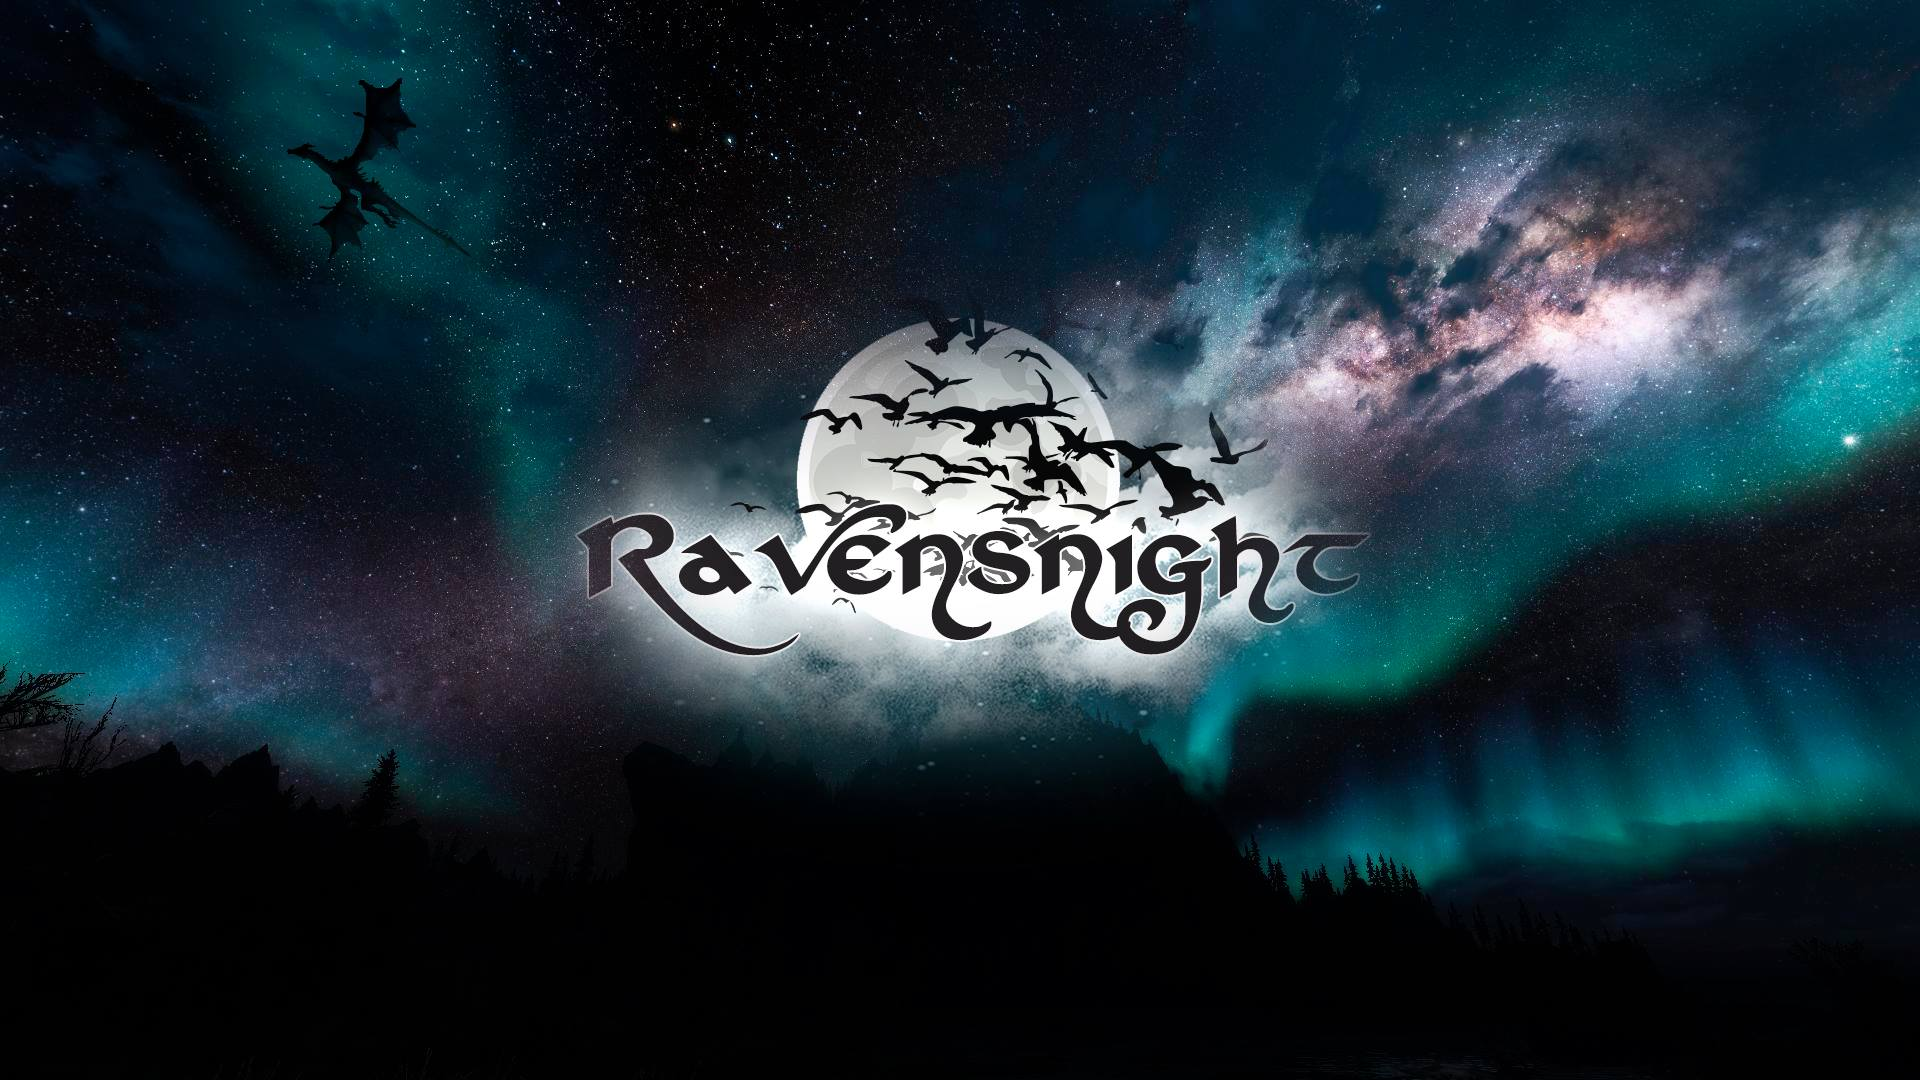 Ravensnight